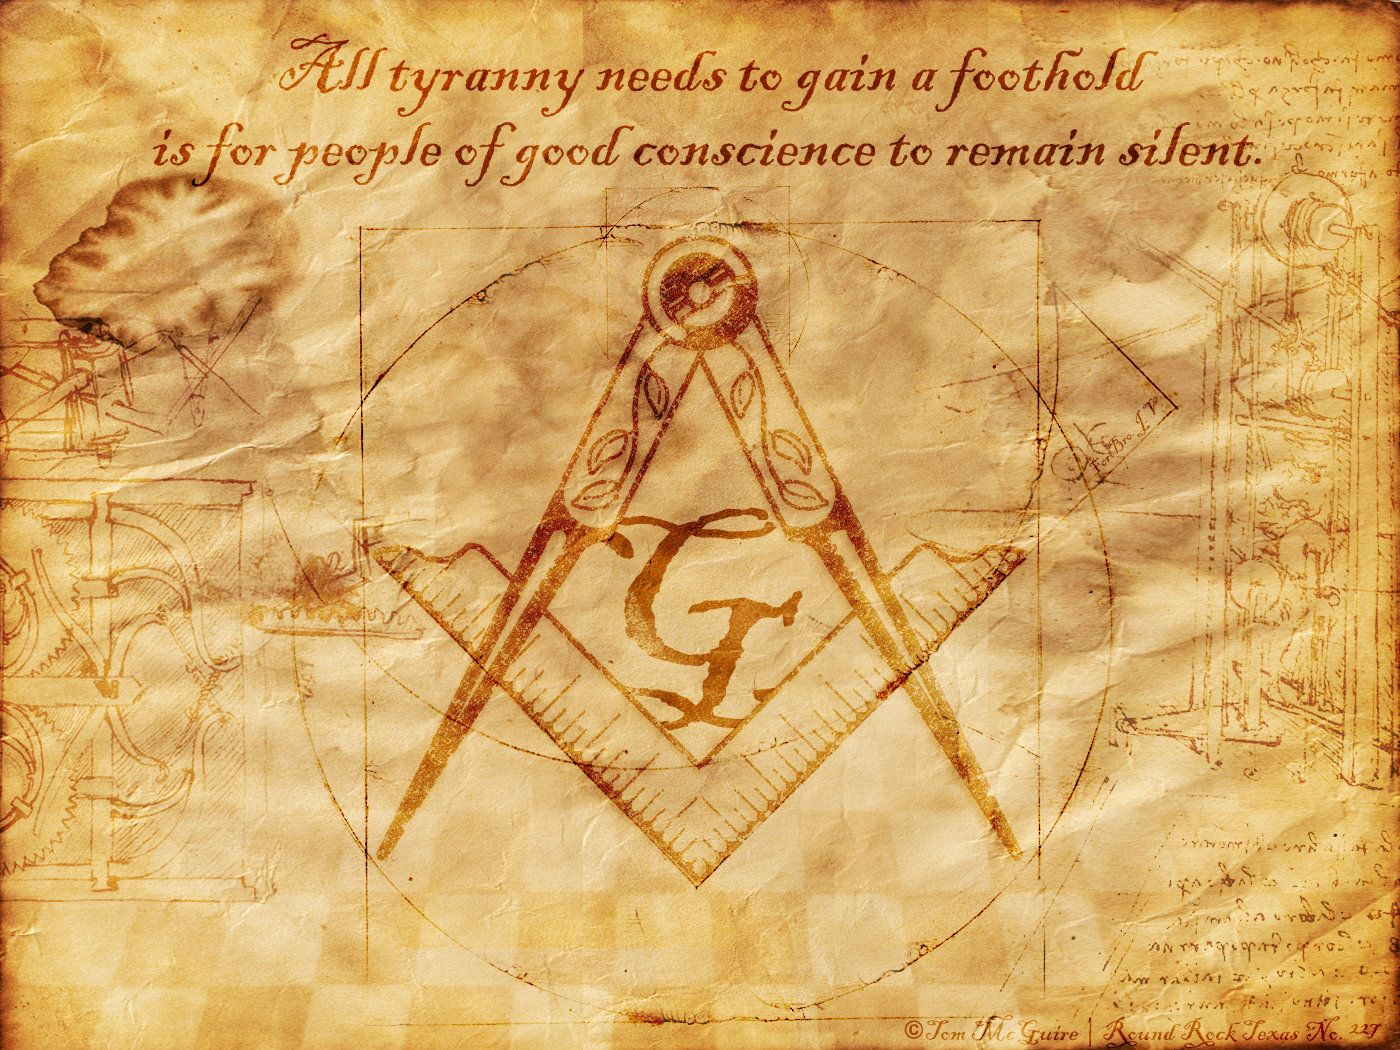 Masonic Symbol D And CG Abstract Background Wallpapers On 1400x1050 Desktop 41